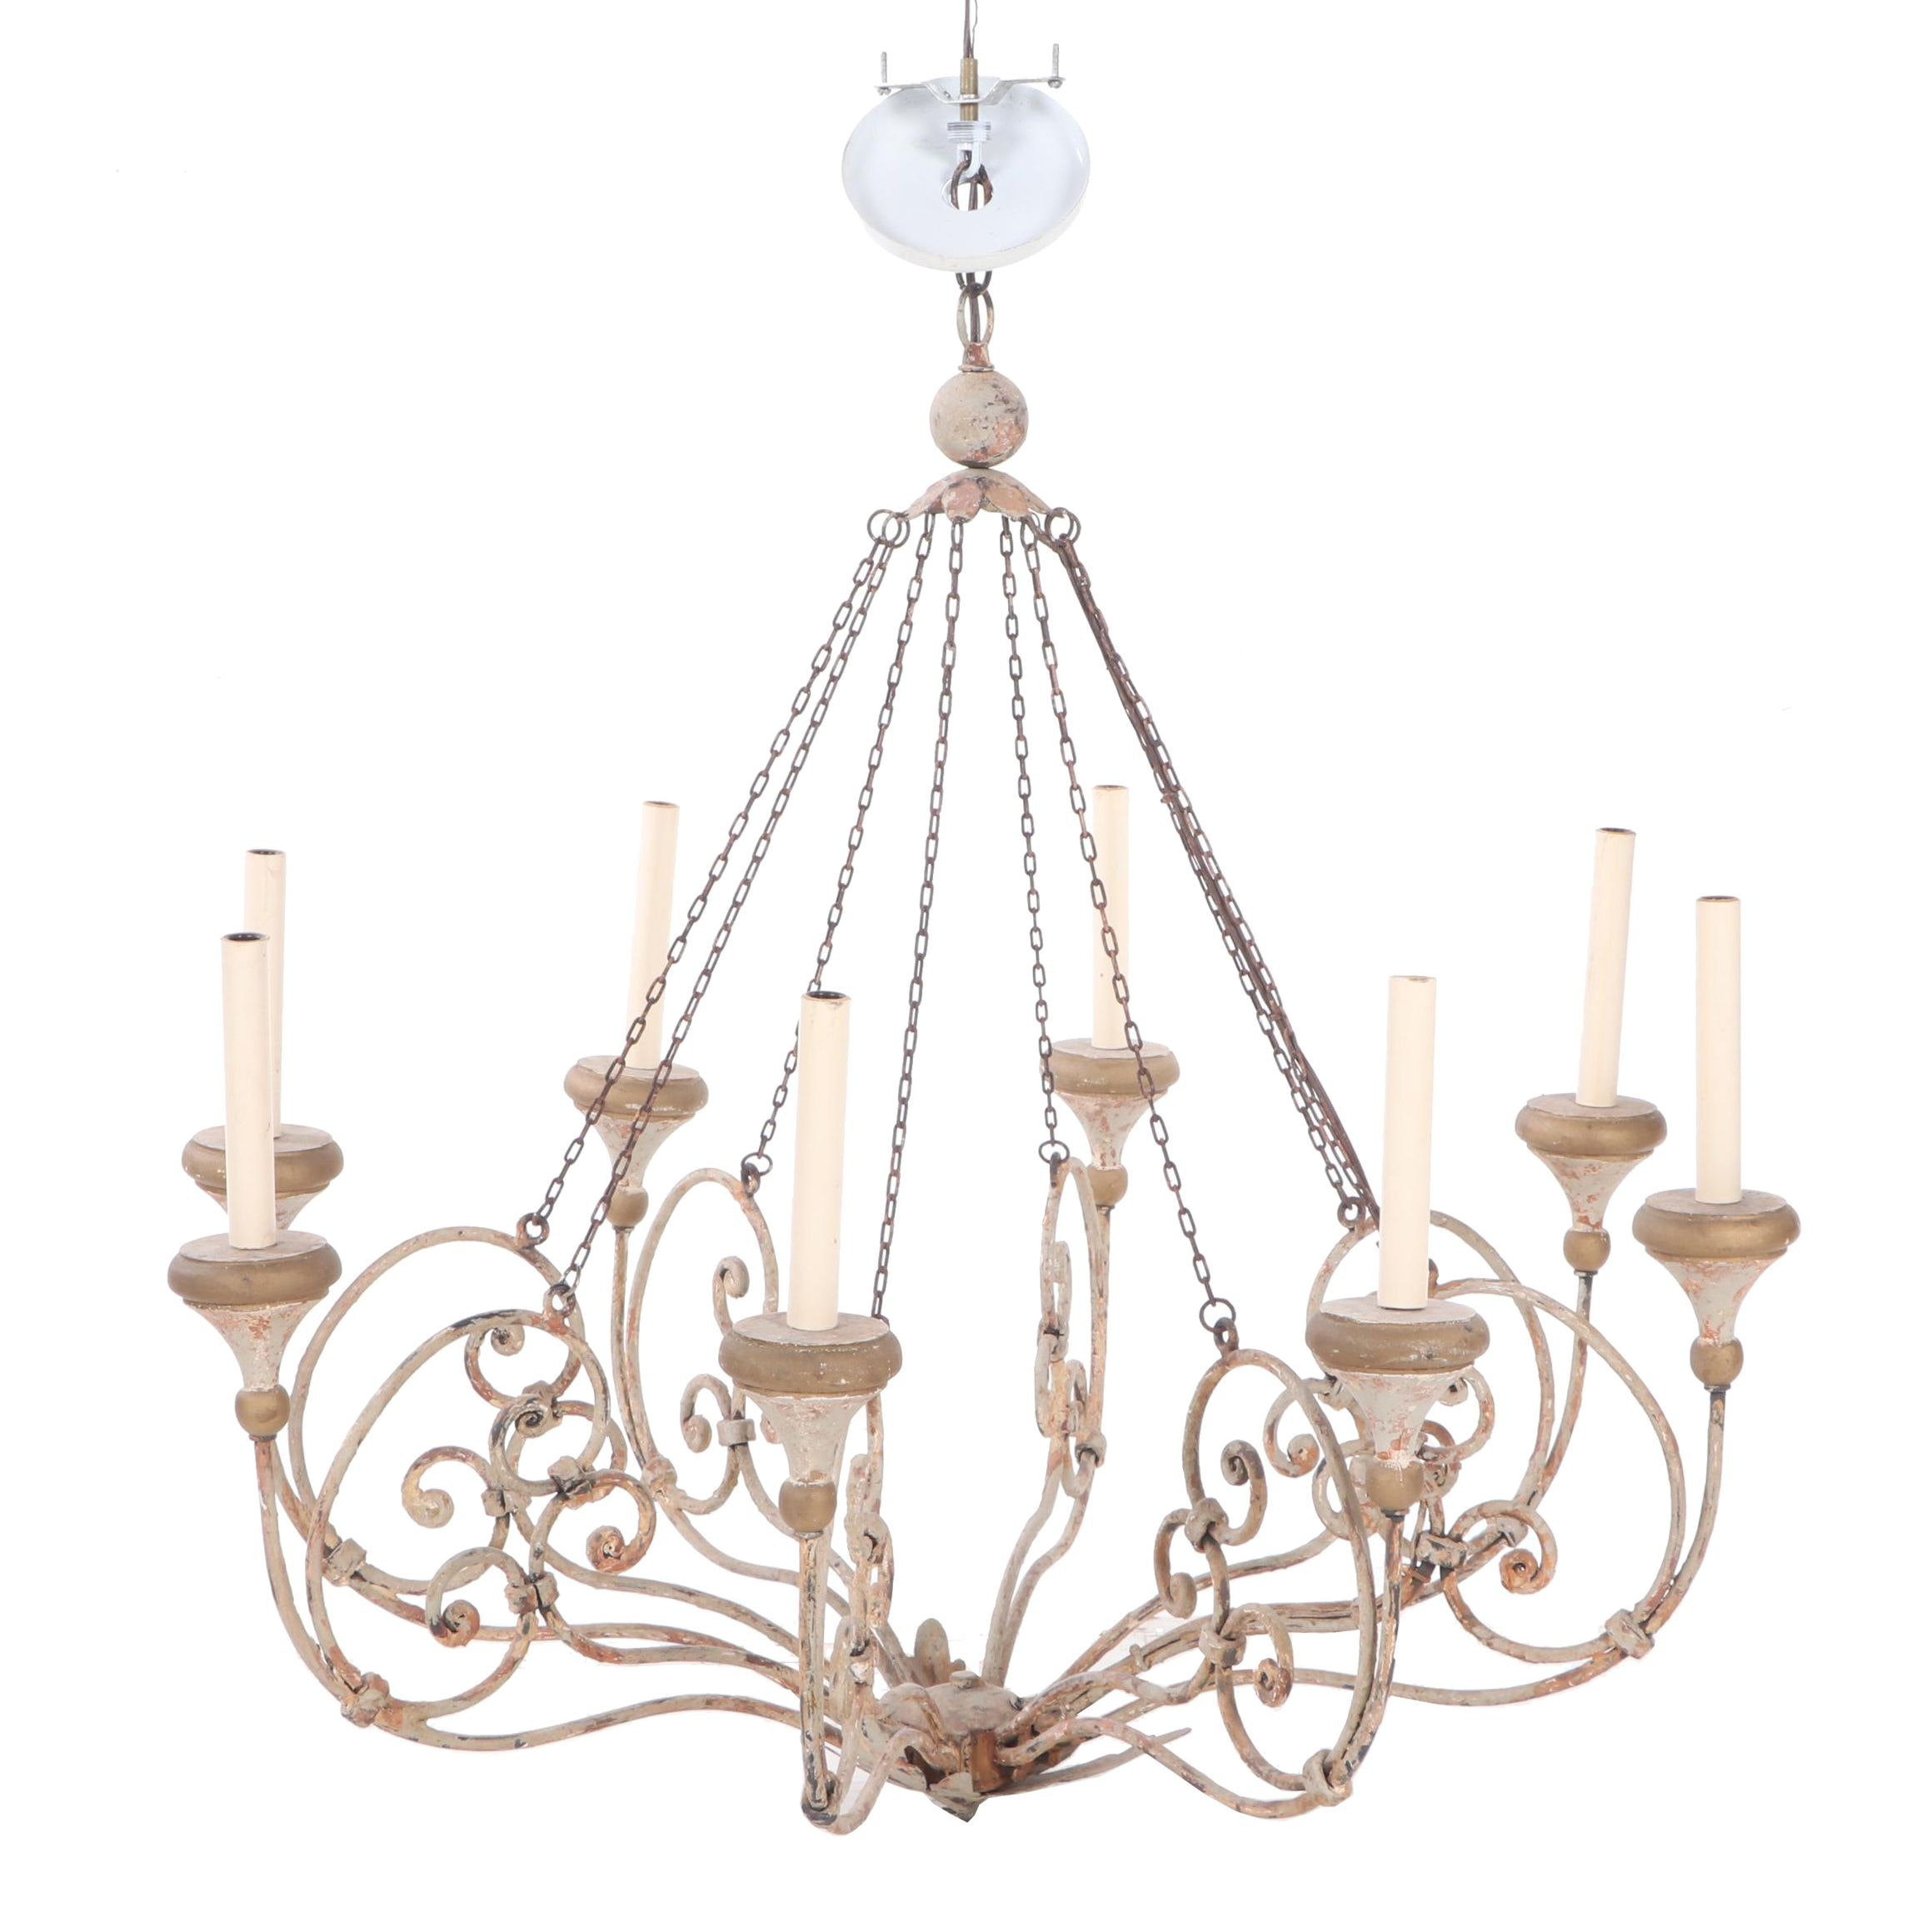 French Provincial Style Scrolled Metal Chandelier, Early 20th Century